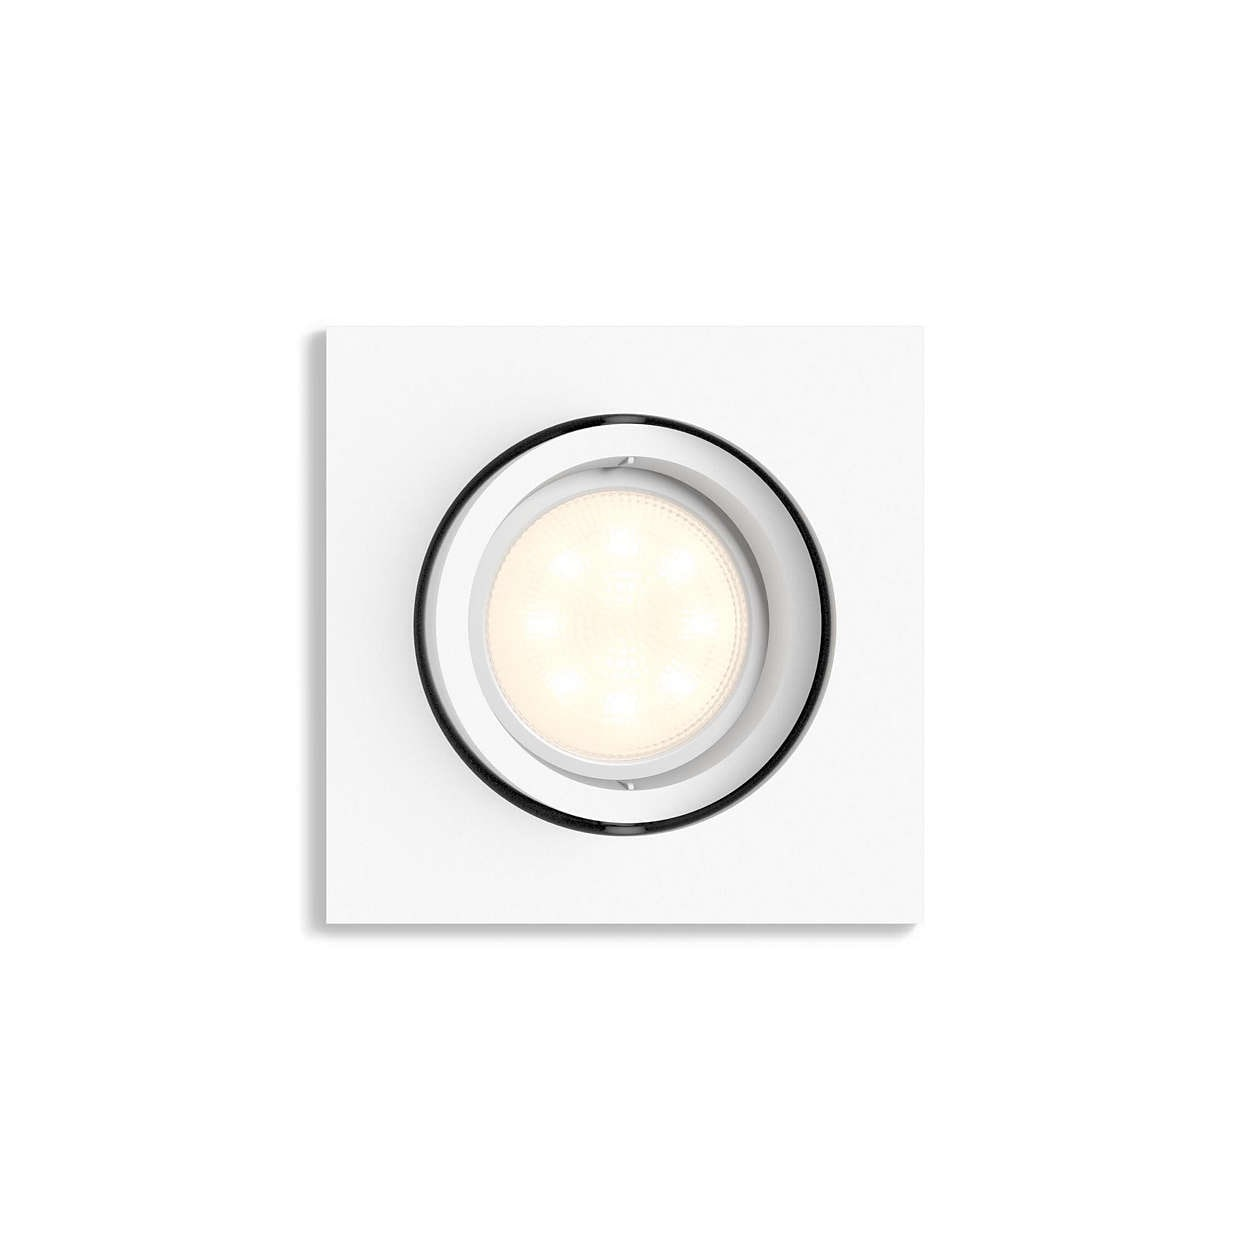 Shellbark kub spotlight LED vit 4,5W